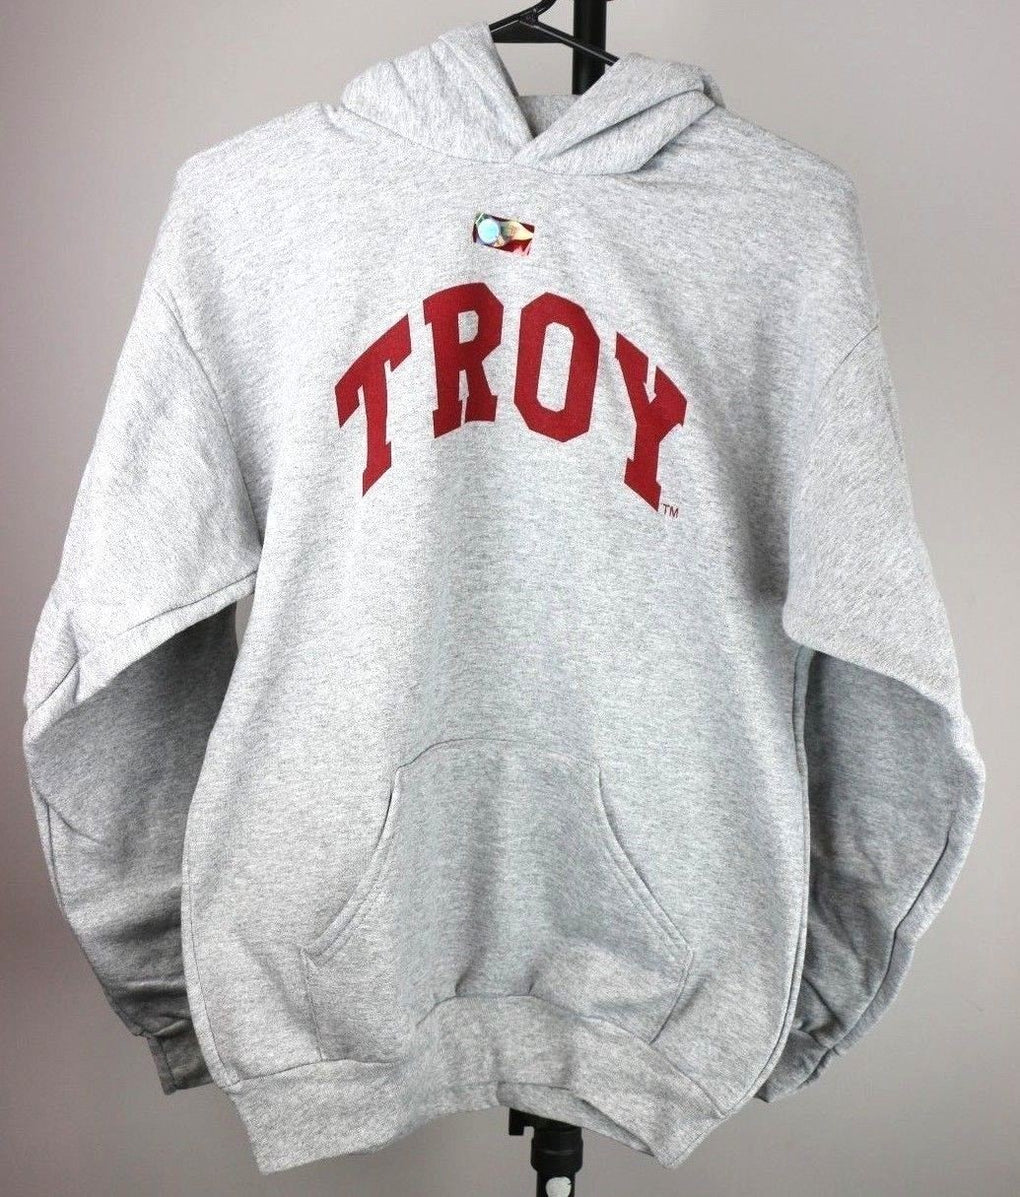 Troy State Trojans Youth Hooded Sweatshirt (Youth XL, Gray) - Fazoom